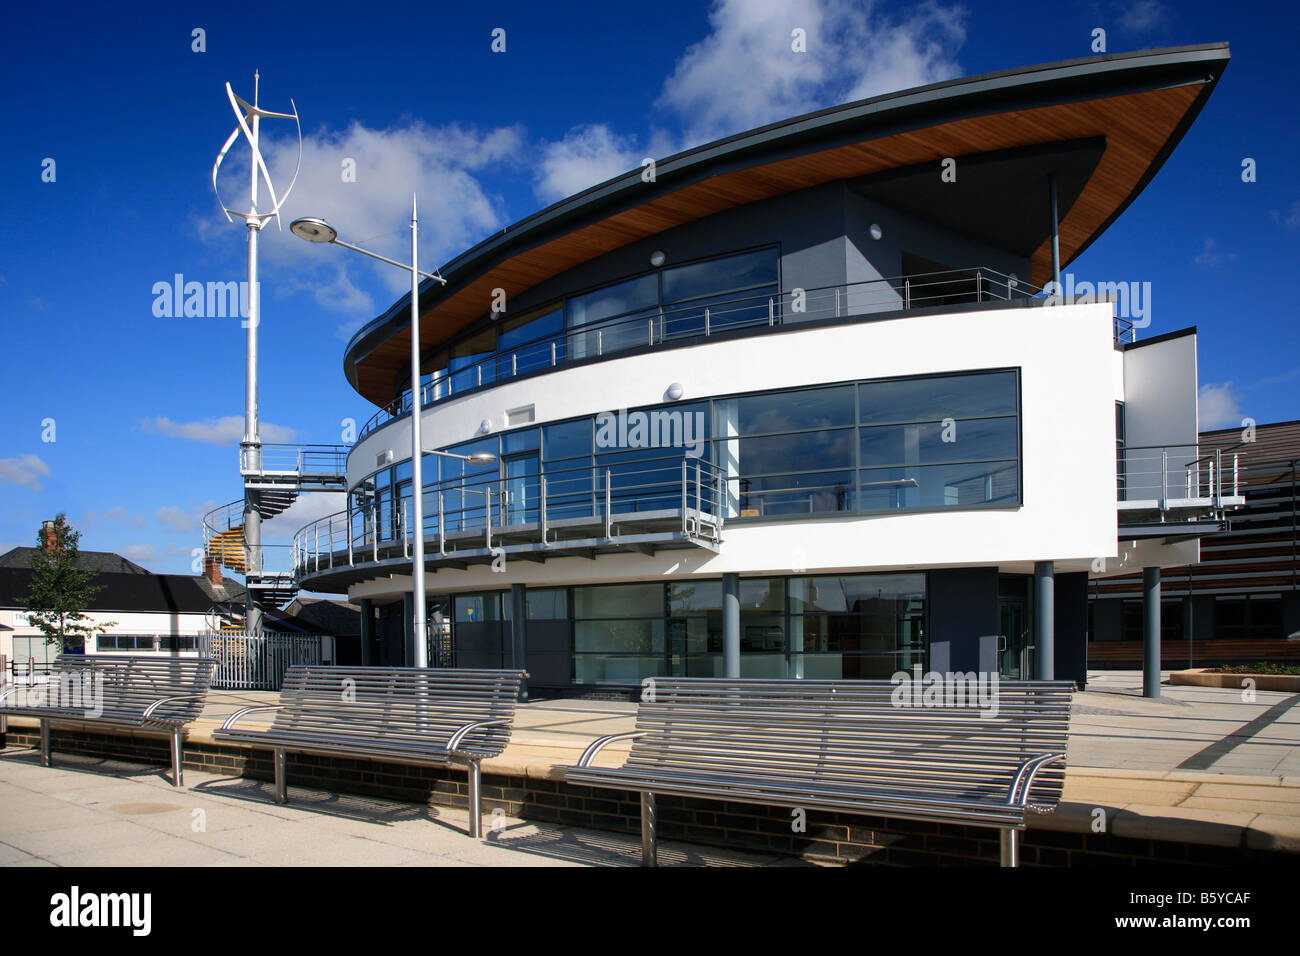 Modern Architecture Uk the new modern architecture boat house centre wisbech town docks